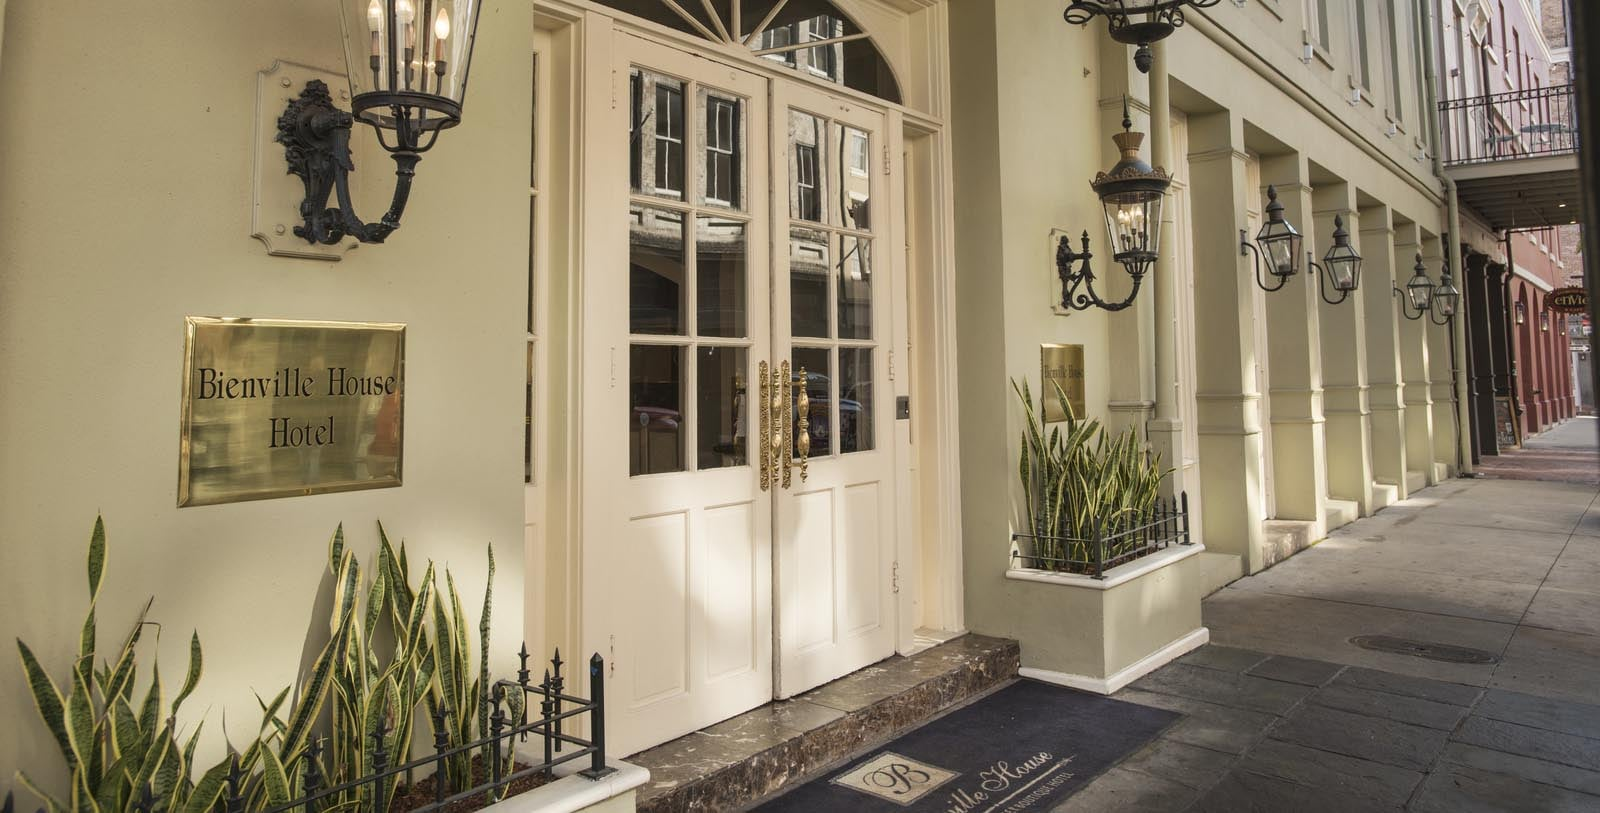 Image of exterior entryway at Bienville House, 1835, Member of Historic Hotels of America, in New Orleans, Louisiana, Discover